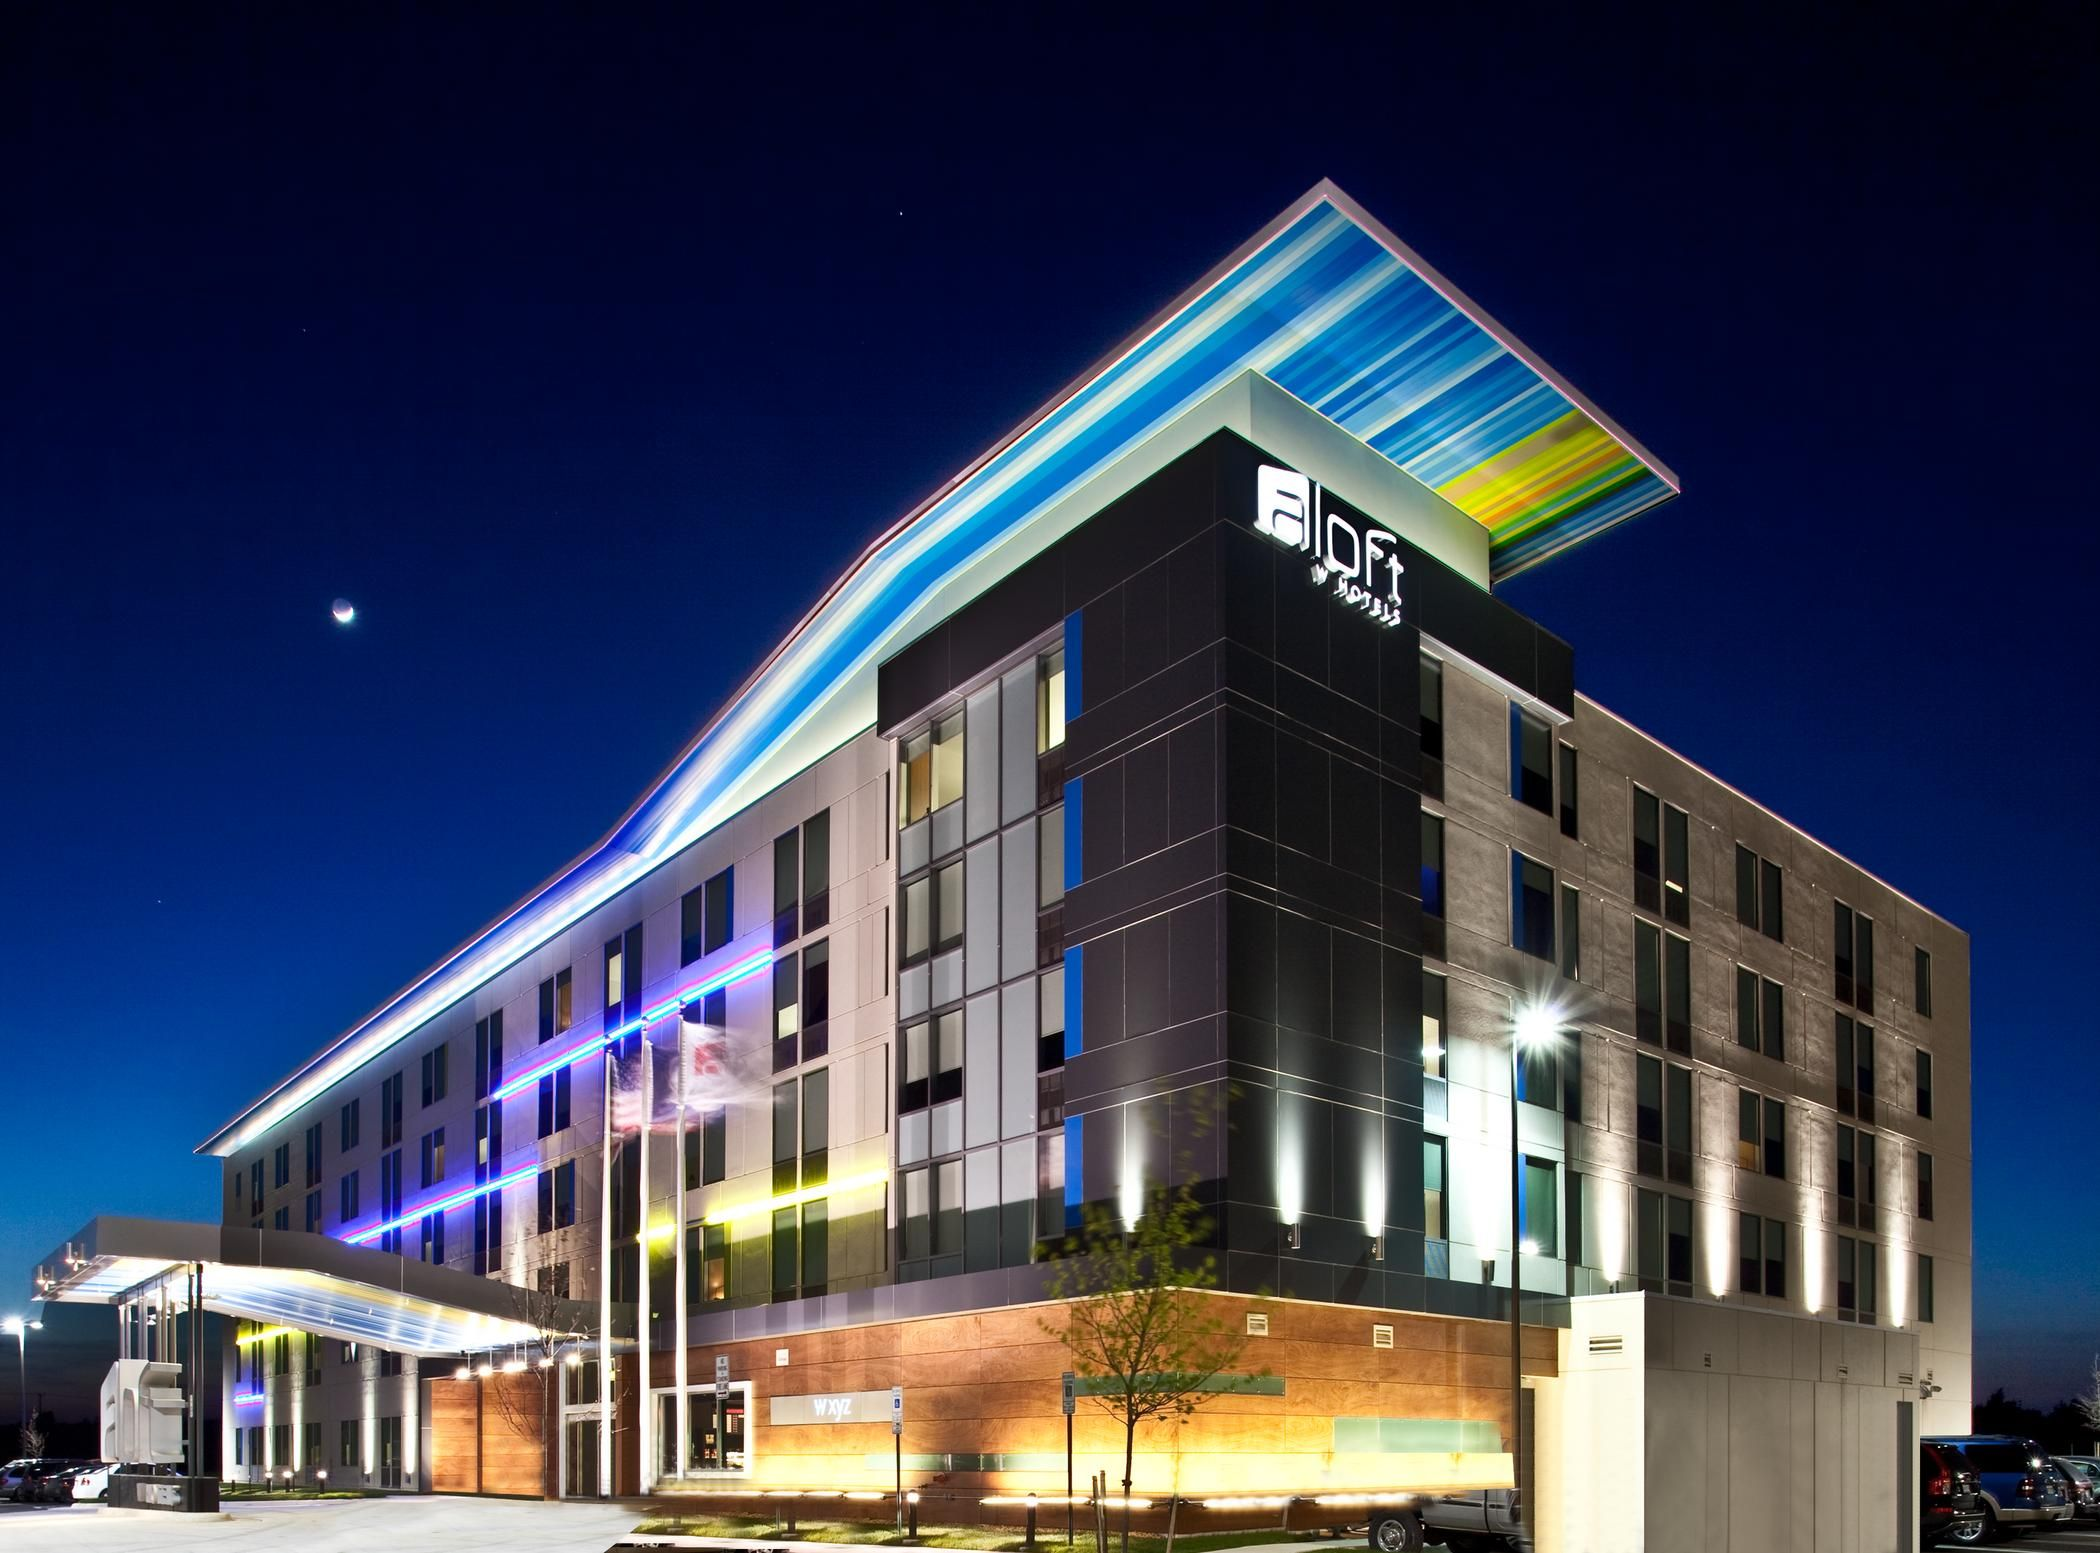 Say Hello To The Aloft Dulles Airport Hotel North Located Only 10 Minutes From Washington